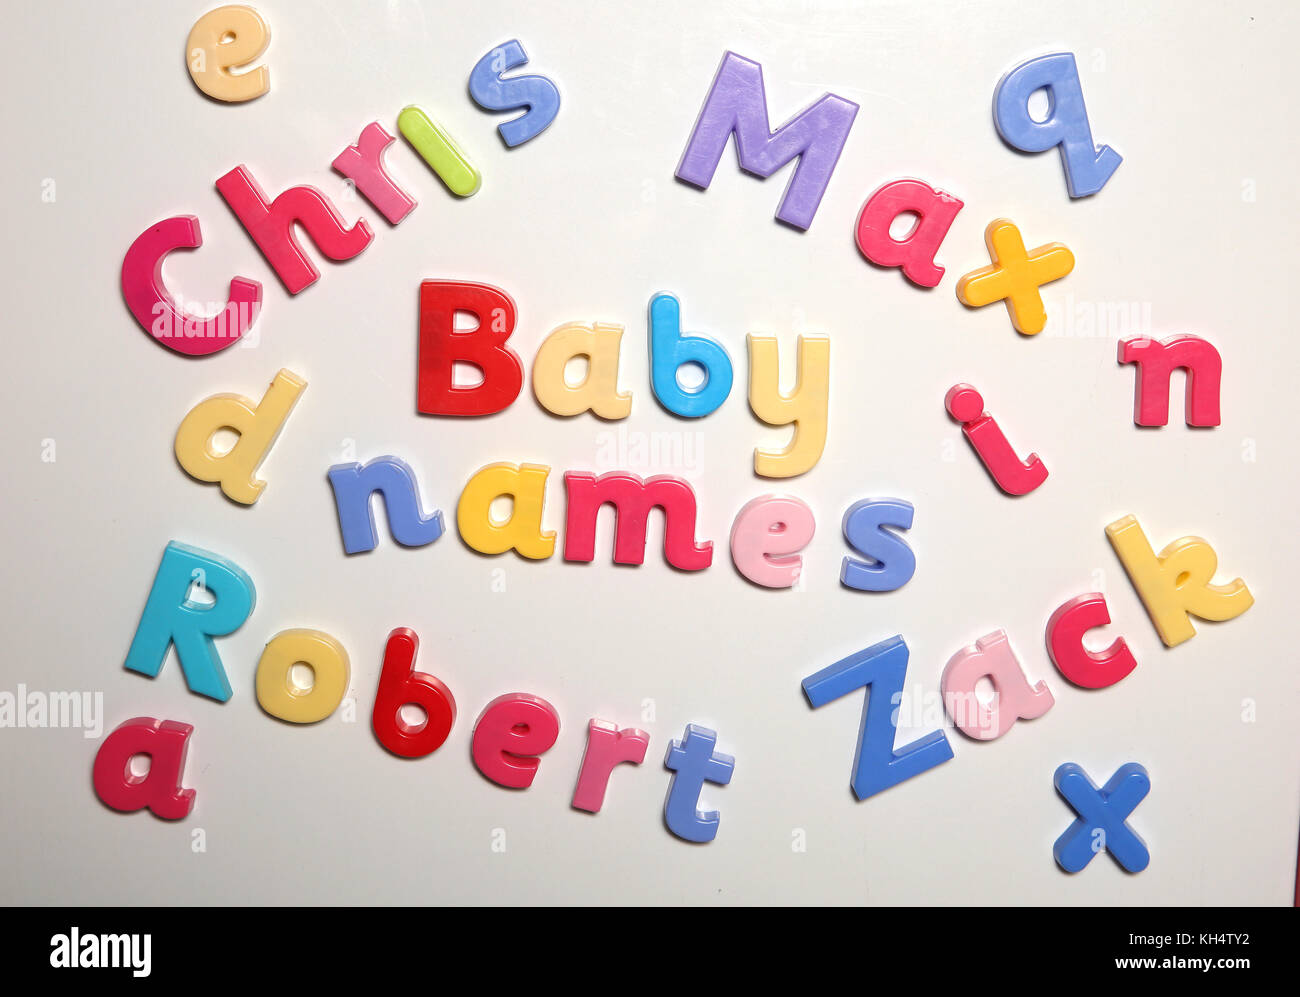 baby names spelt with alphabet letters - Stock Image